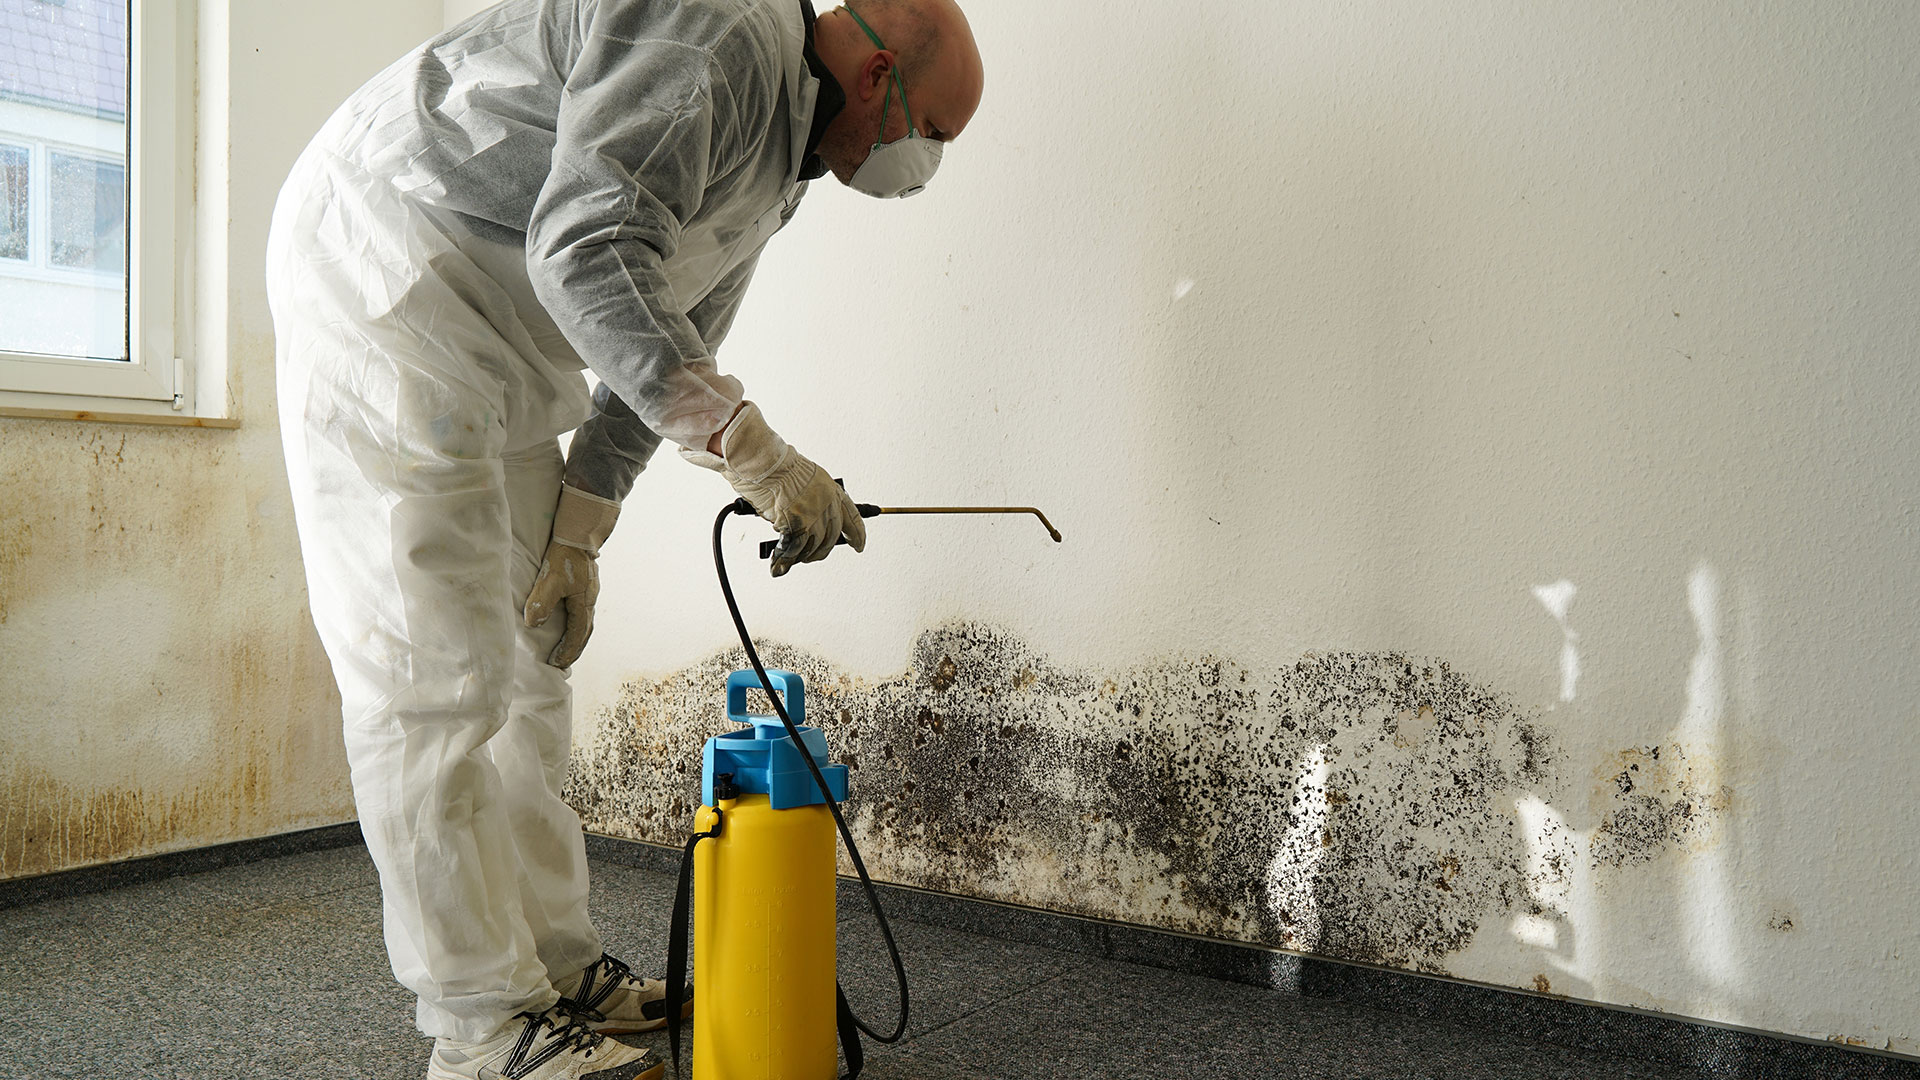 professional removing mold from interior wall